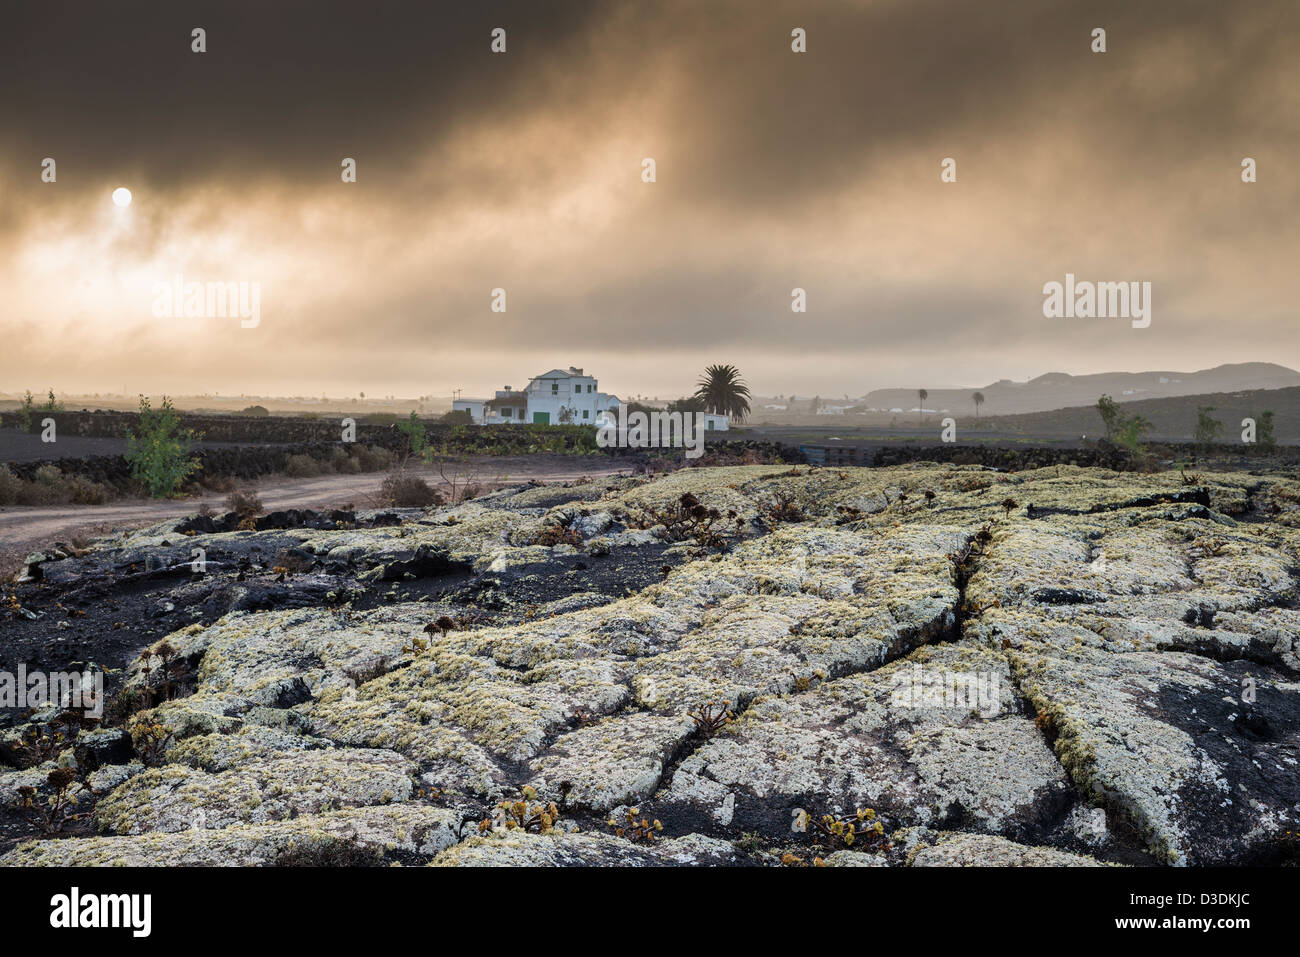 Misty early morning on the lichen-covered pahoehoe or ropy lava near Masdache, Lanzarote, Canary Islands, Spain - Stock Image